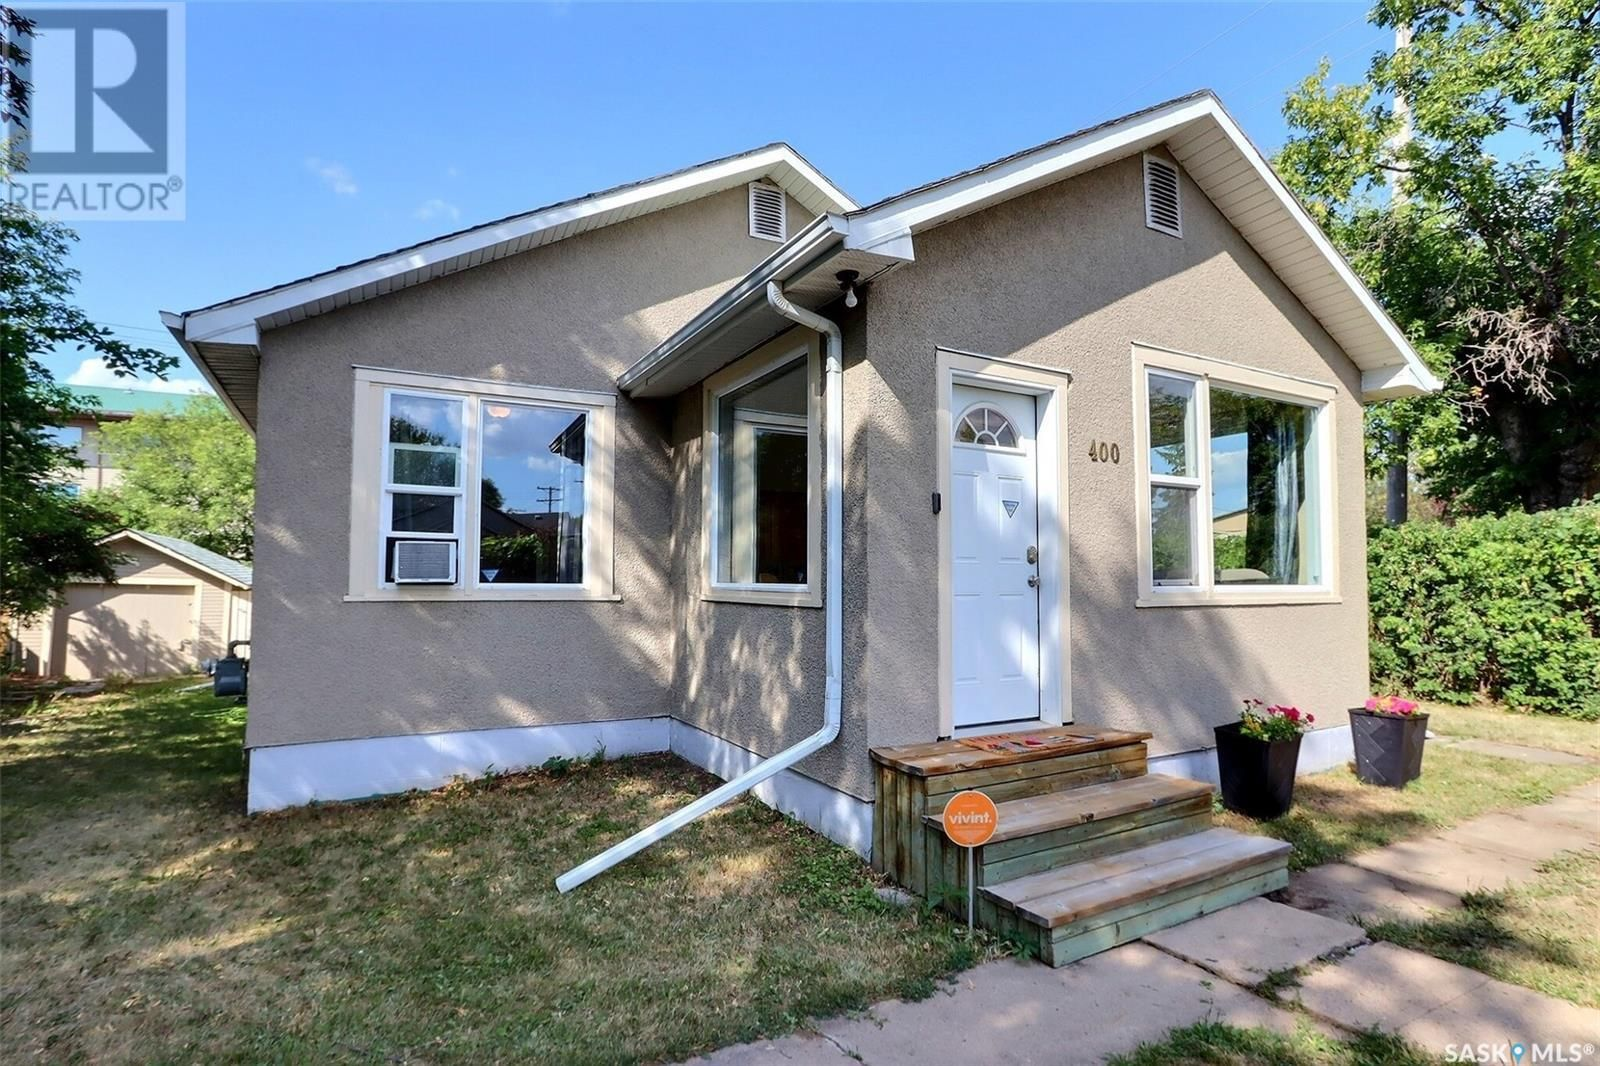 Main Photo: 400 12th ST W in Prince Albert: House for sale : MLS®# SK865437